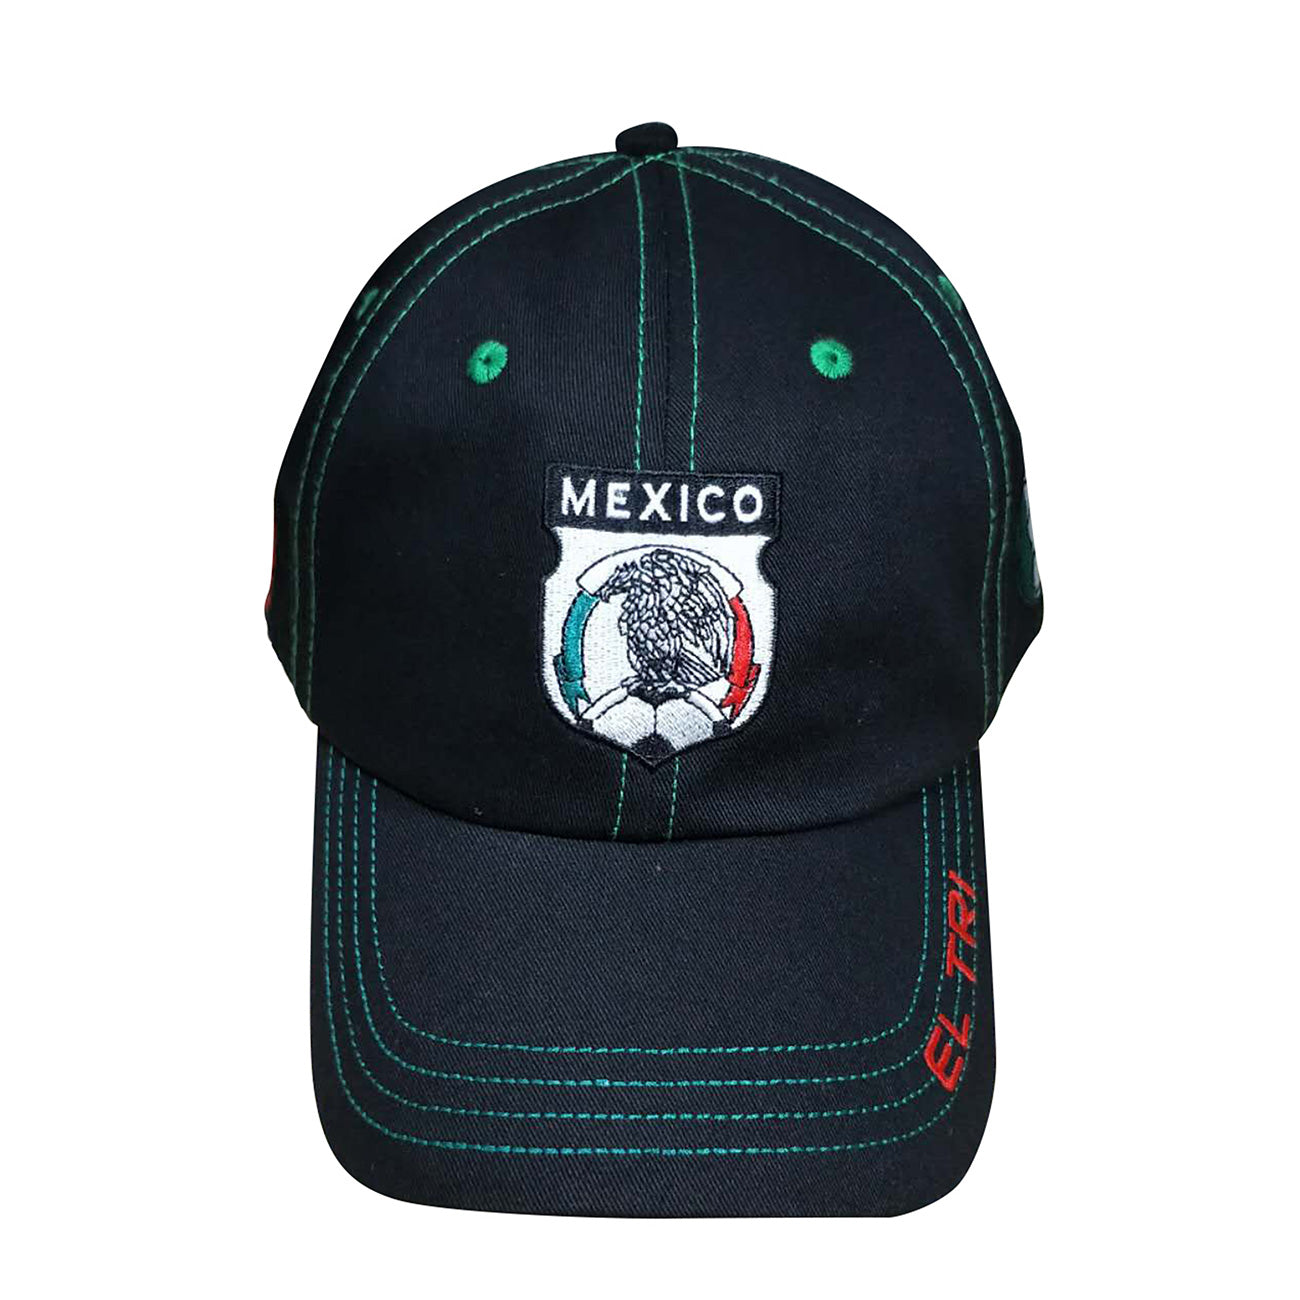 Mexico World Cup Black Dads Cap